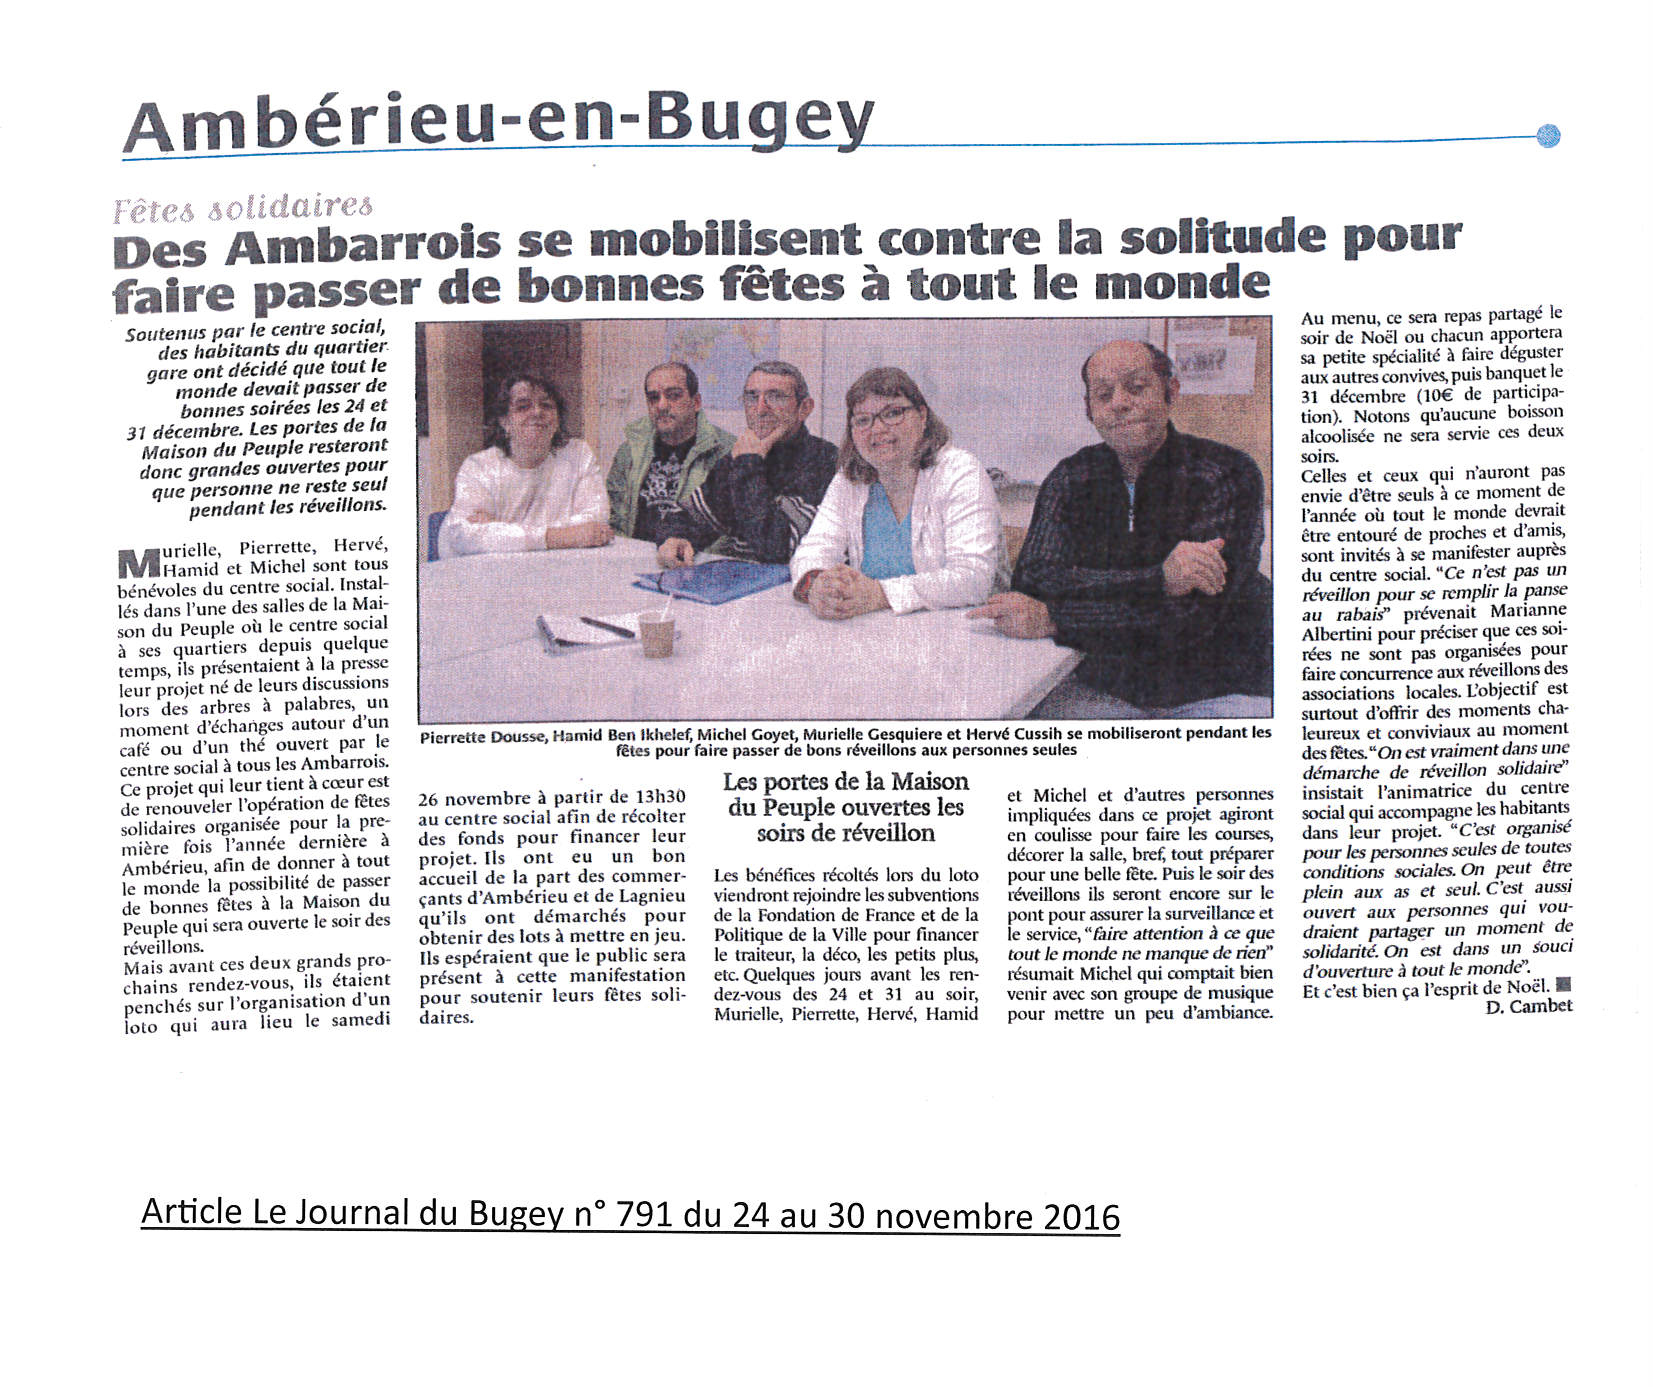 journal-du-bugey-du-24-au-30-novembre-2016